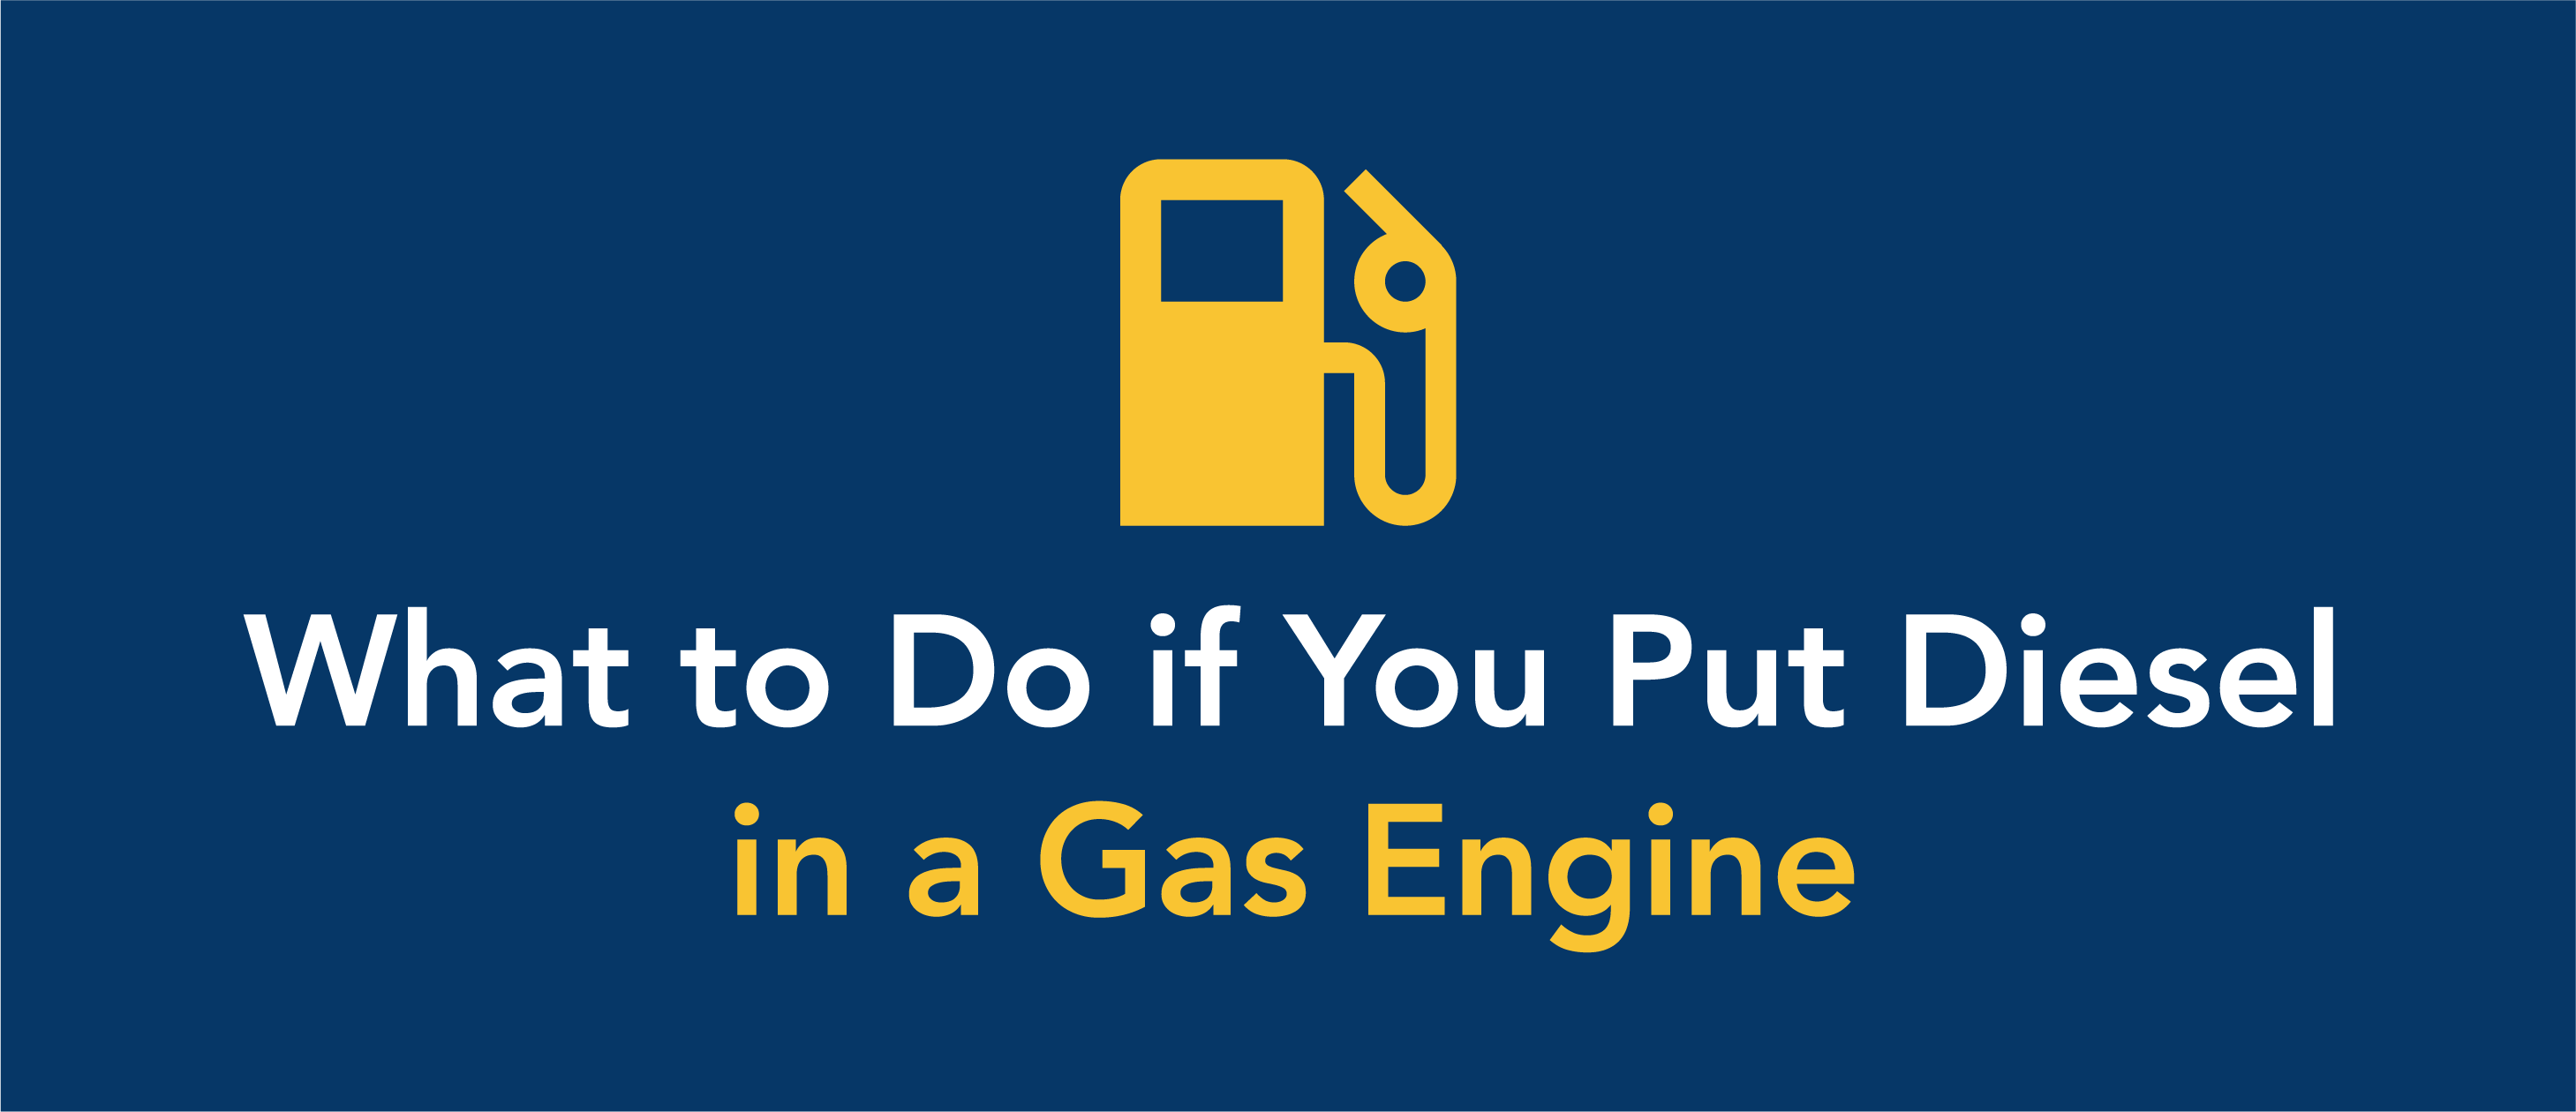 What to do if you put diesel in a gas engine.